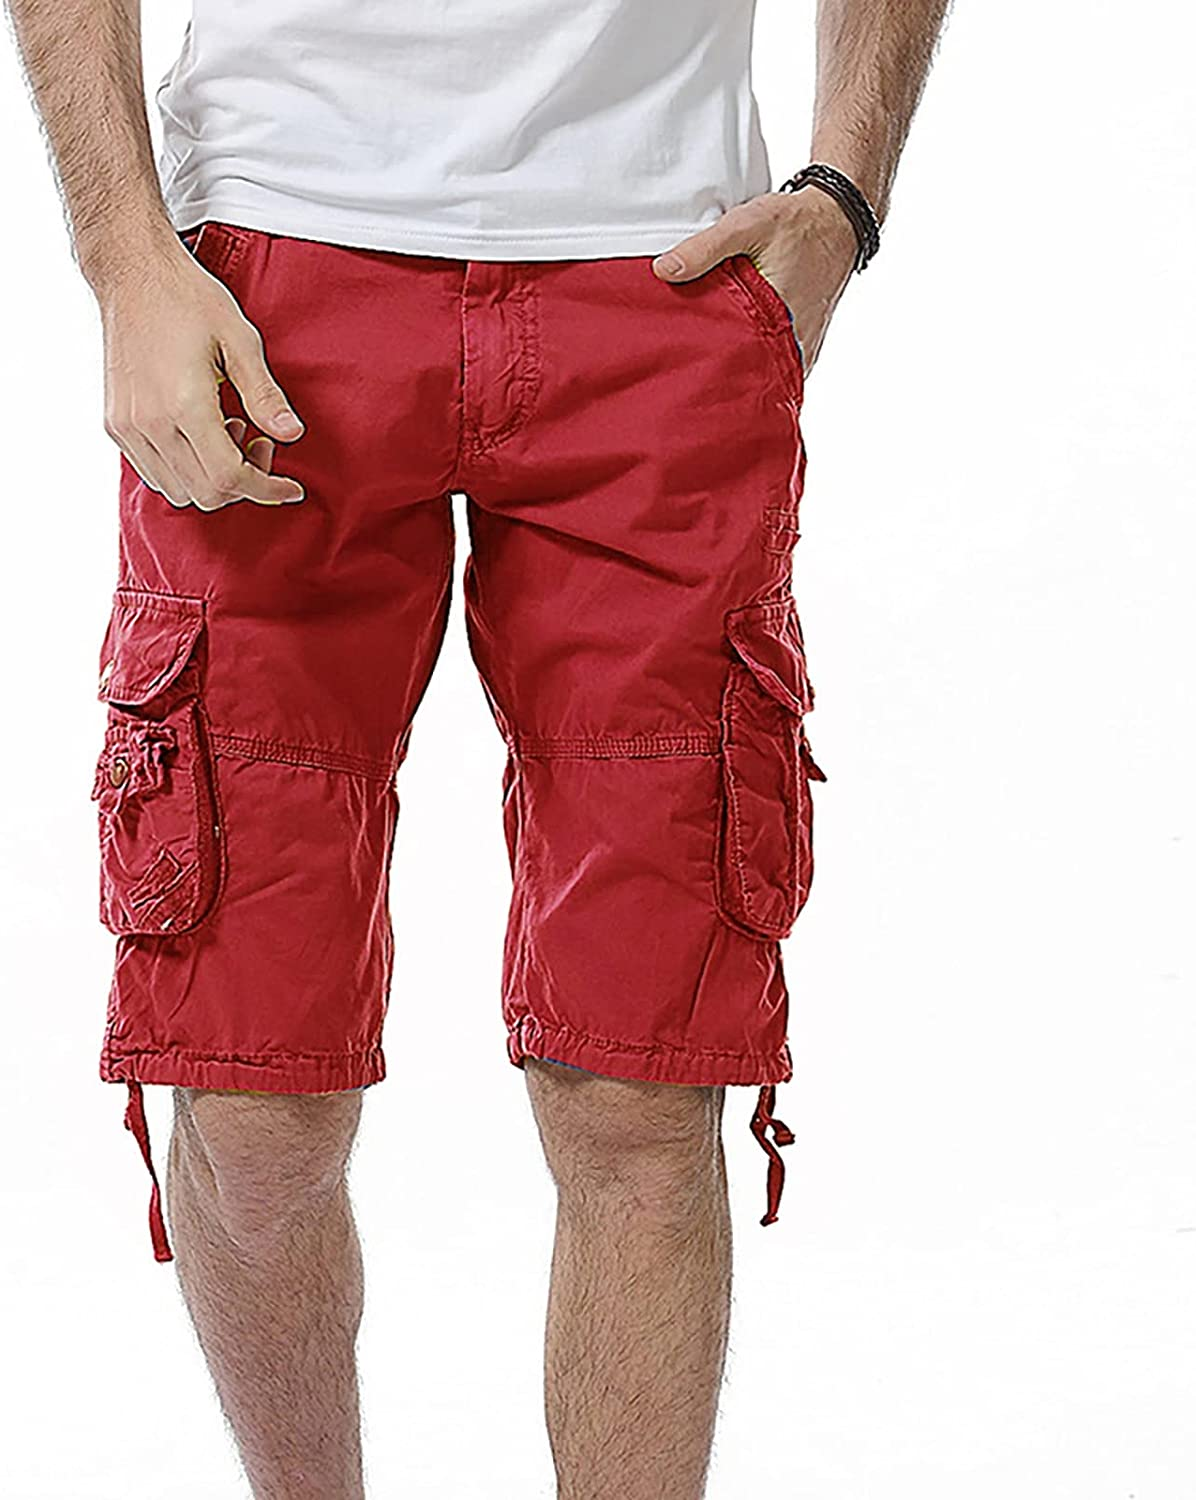 Dellk New Military Cargo Summer Men Shorts Male Casual Fashion Clothing Cotton Loose Work Tactical Camouflage Plus Size